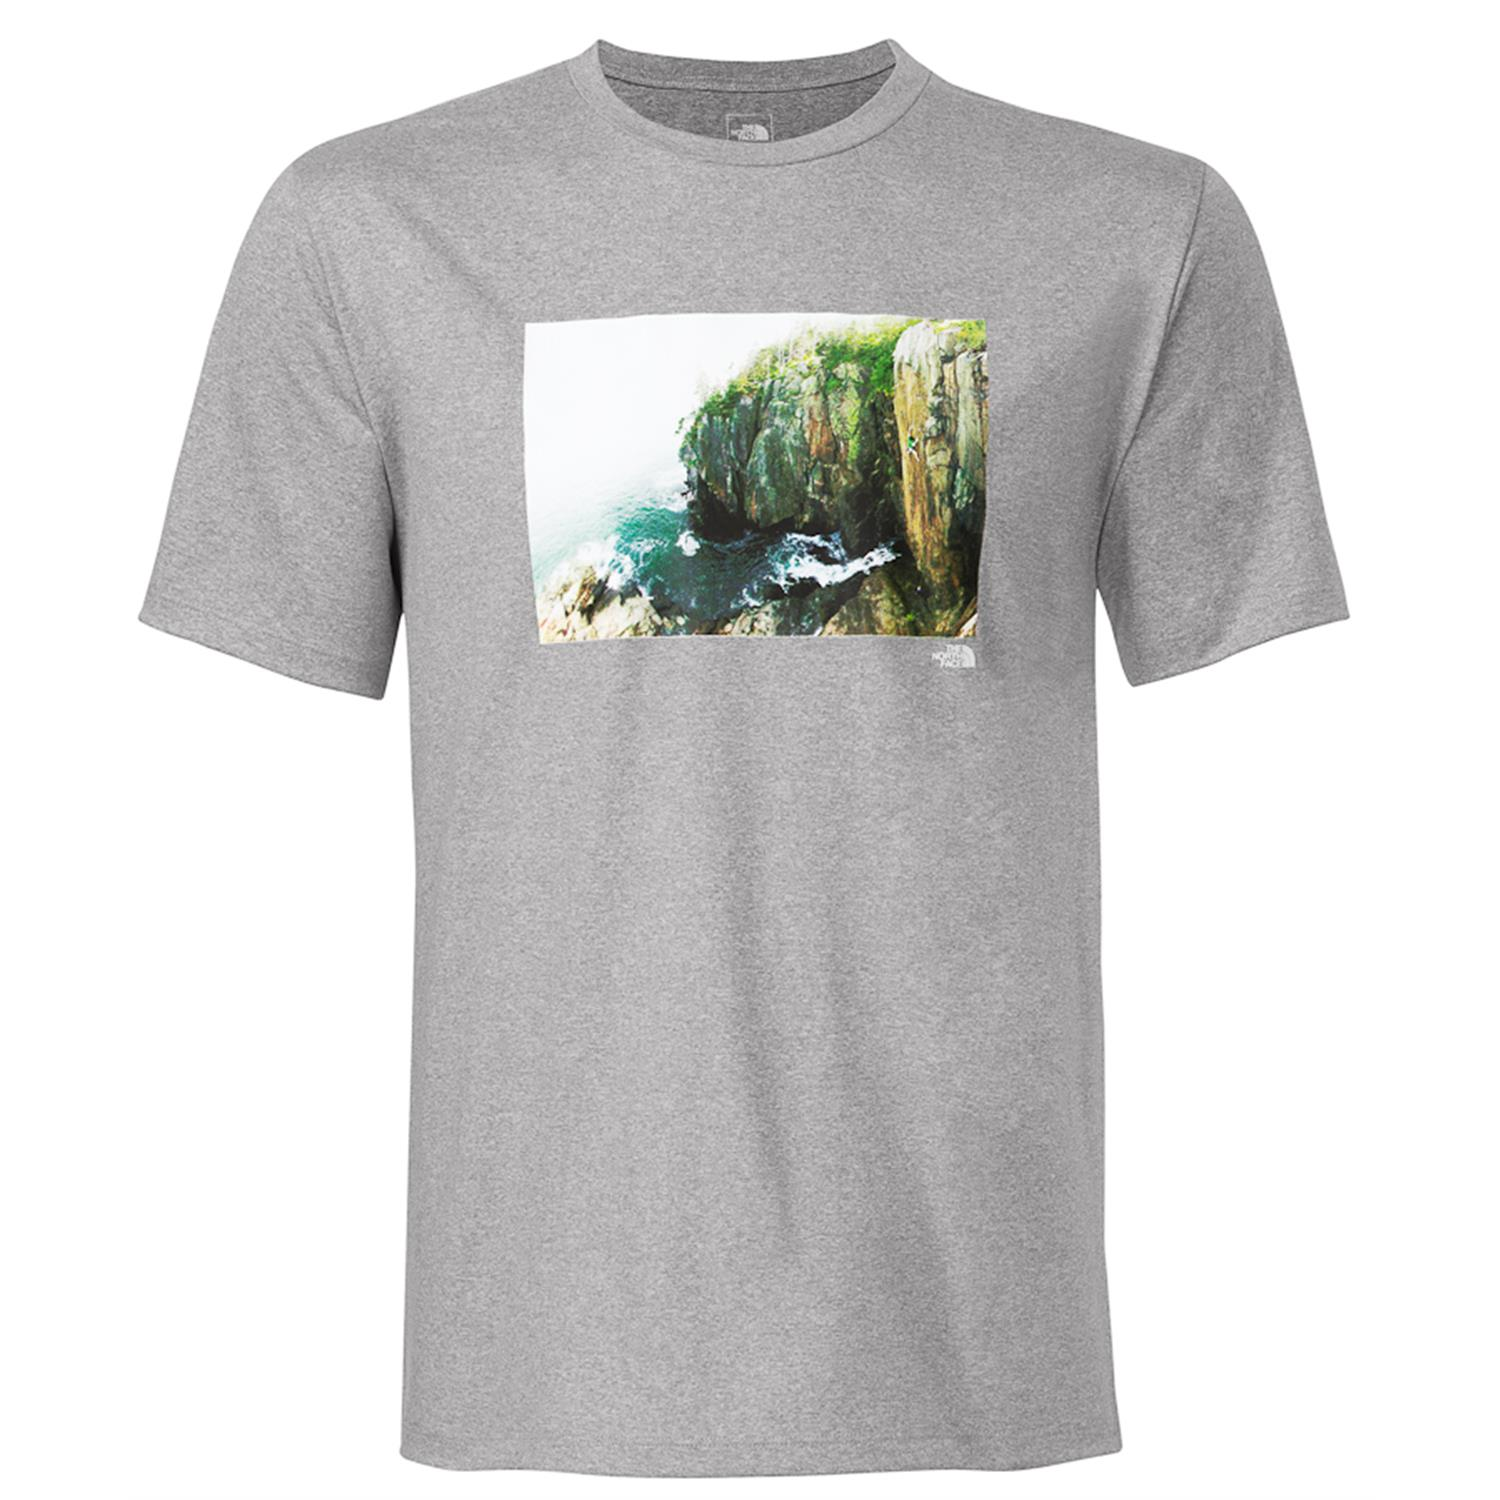 The North Face Kemple T Shirt Evo Outlet